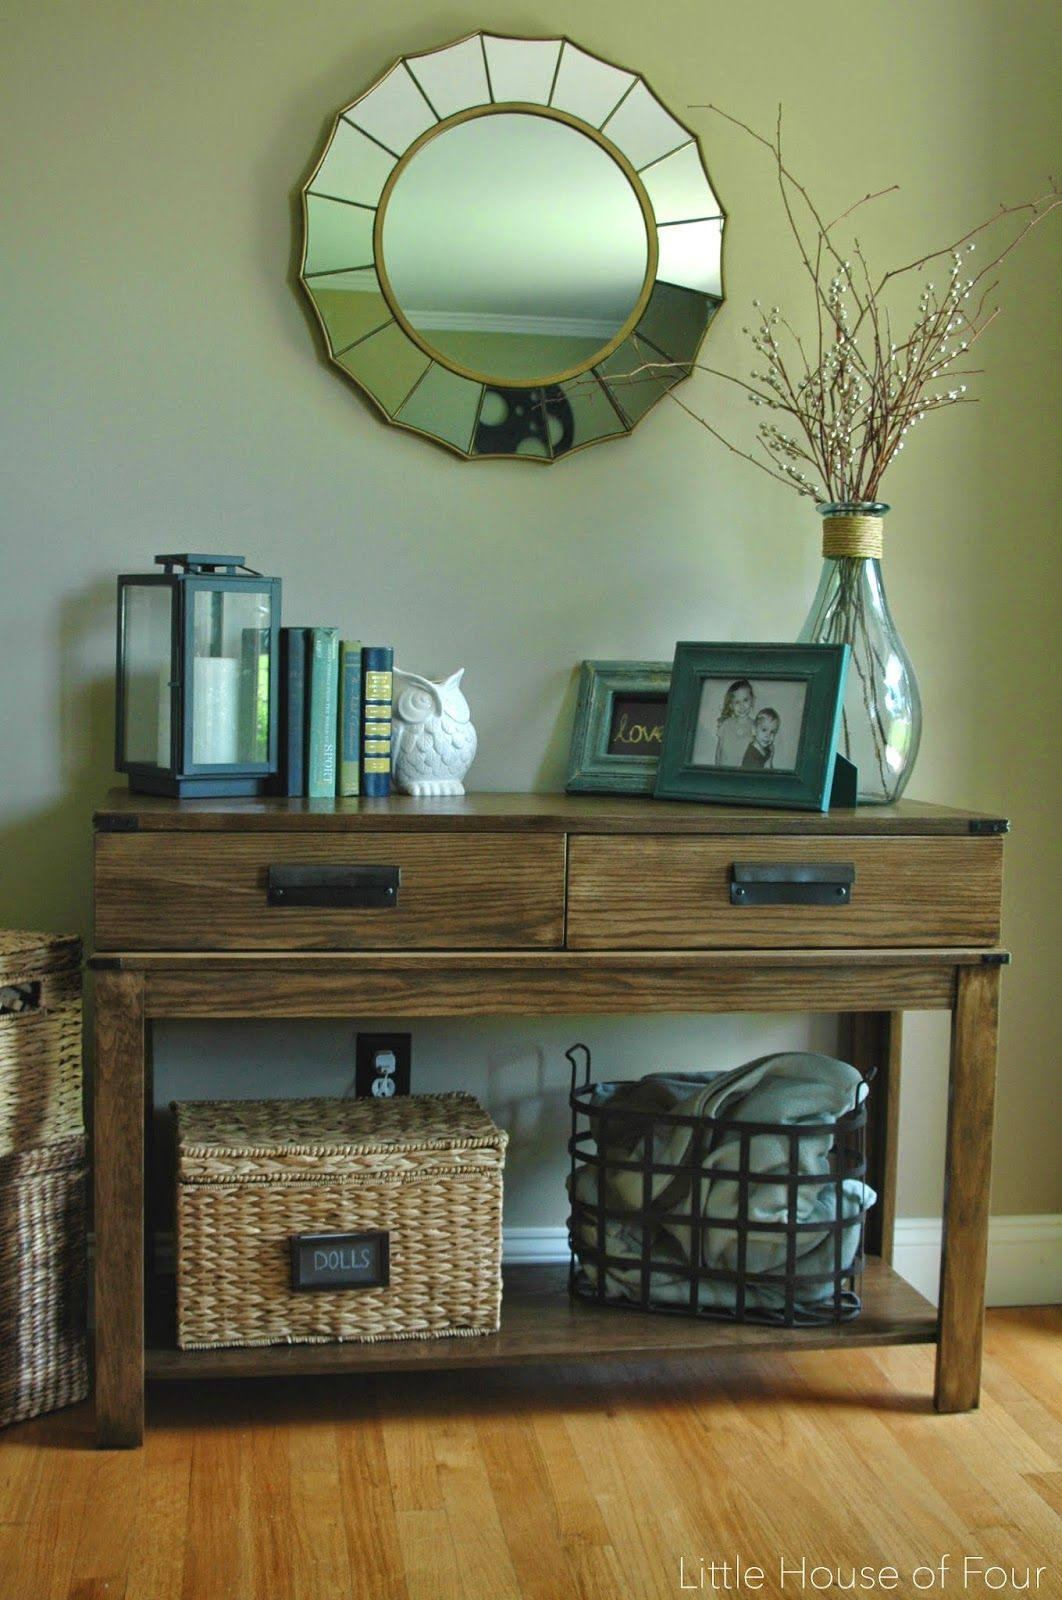 west elm inspired homegoods table makeover for the home house accent decor ideas stain metal accents and custom made bin pulls over this find resemble outdoor clear lucite end